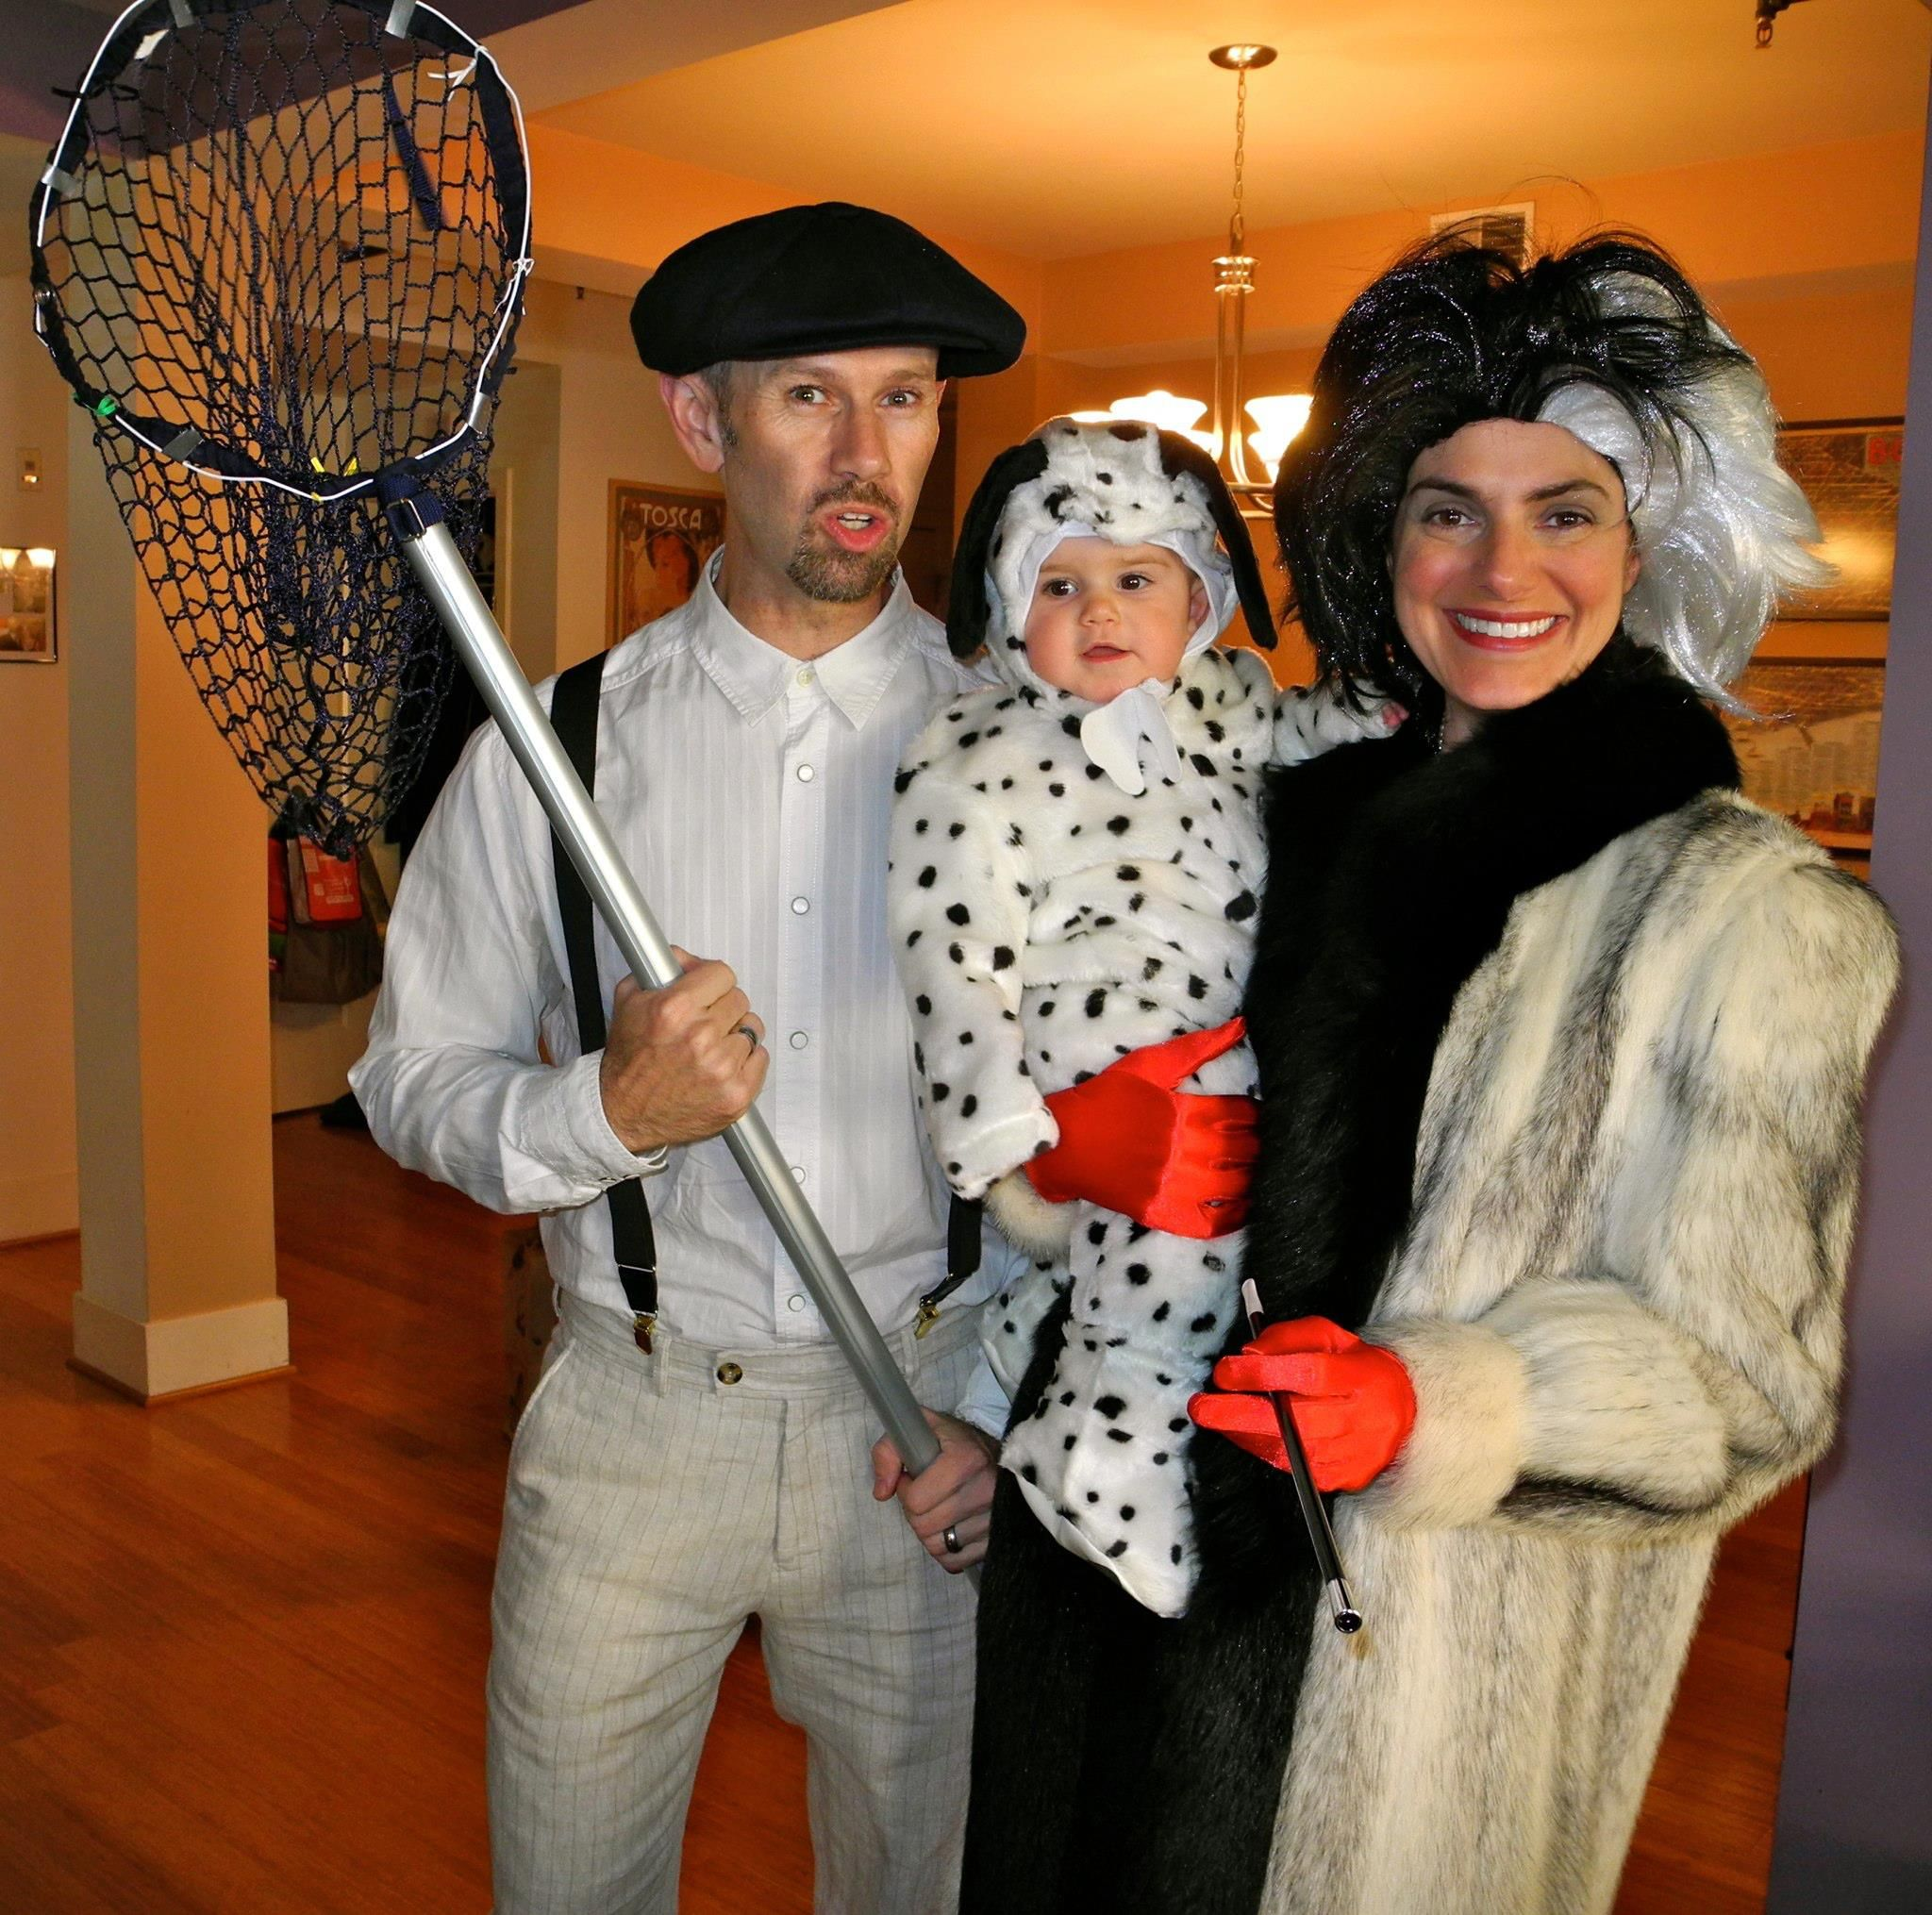 Cruella de Vil and Spot From 101 Dalmatians#famous halloween couples costume  sc 1 st  Pinterest & Cruella de Vil and Spot From 101 Dalmatians#famous halloween couples ...